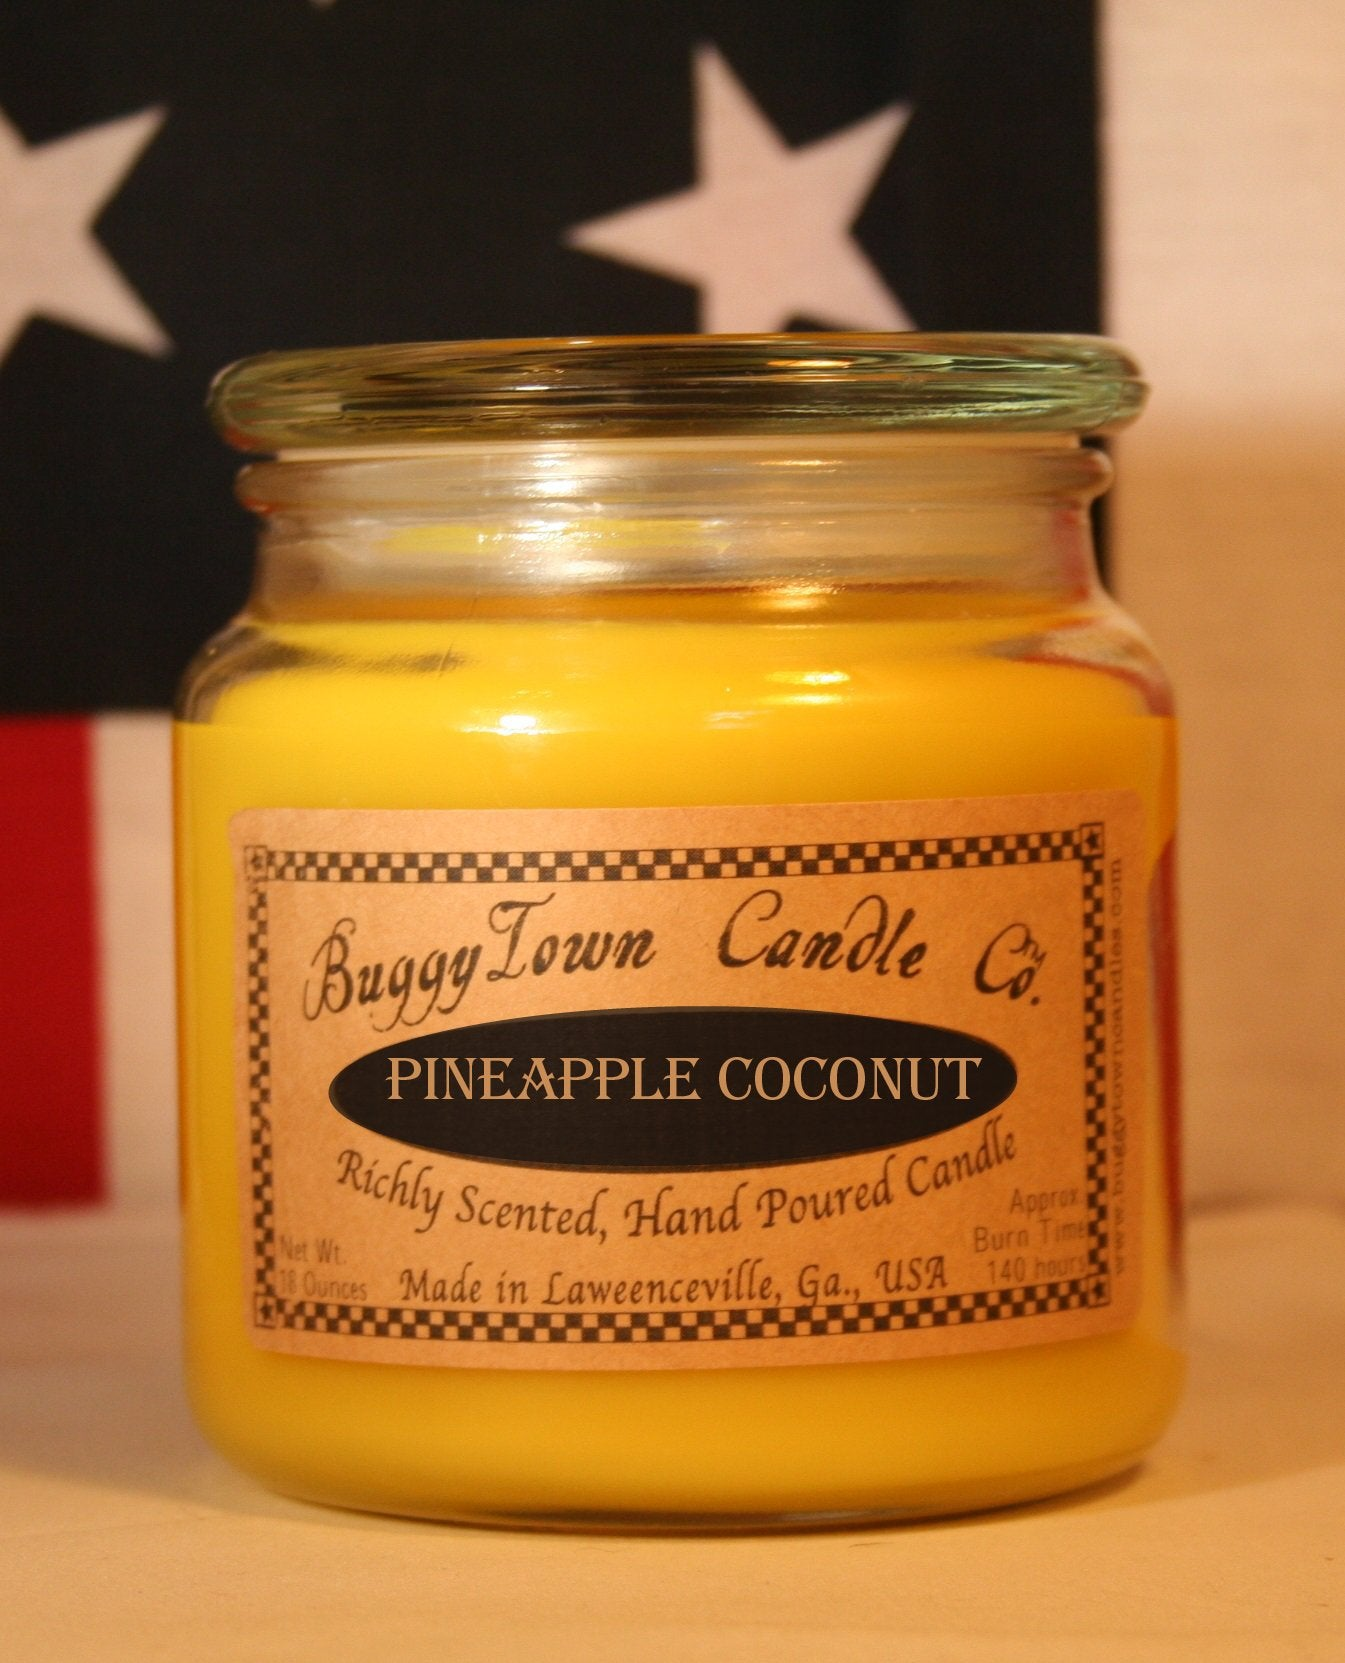 Pineapple Coconut Candles